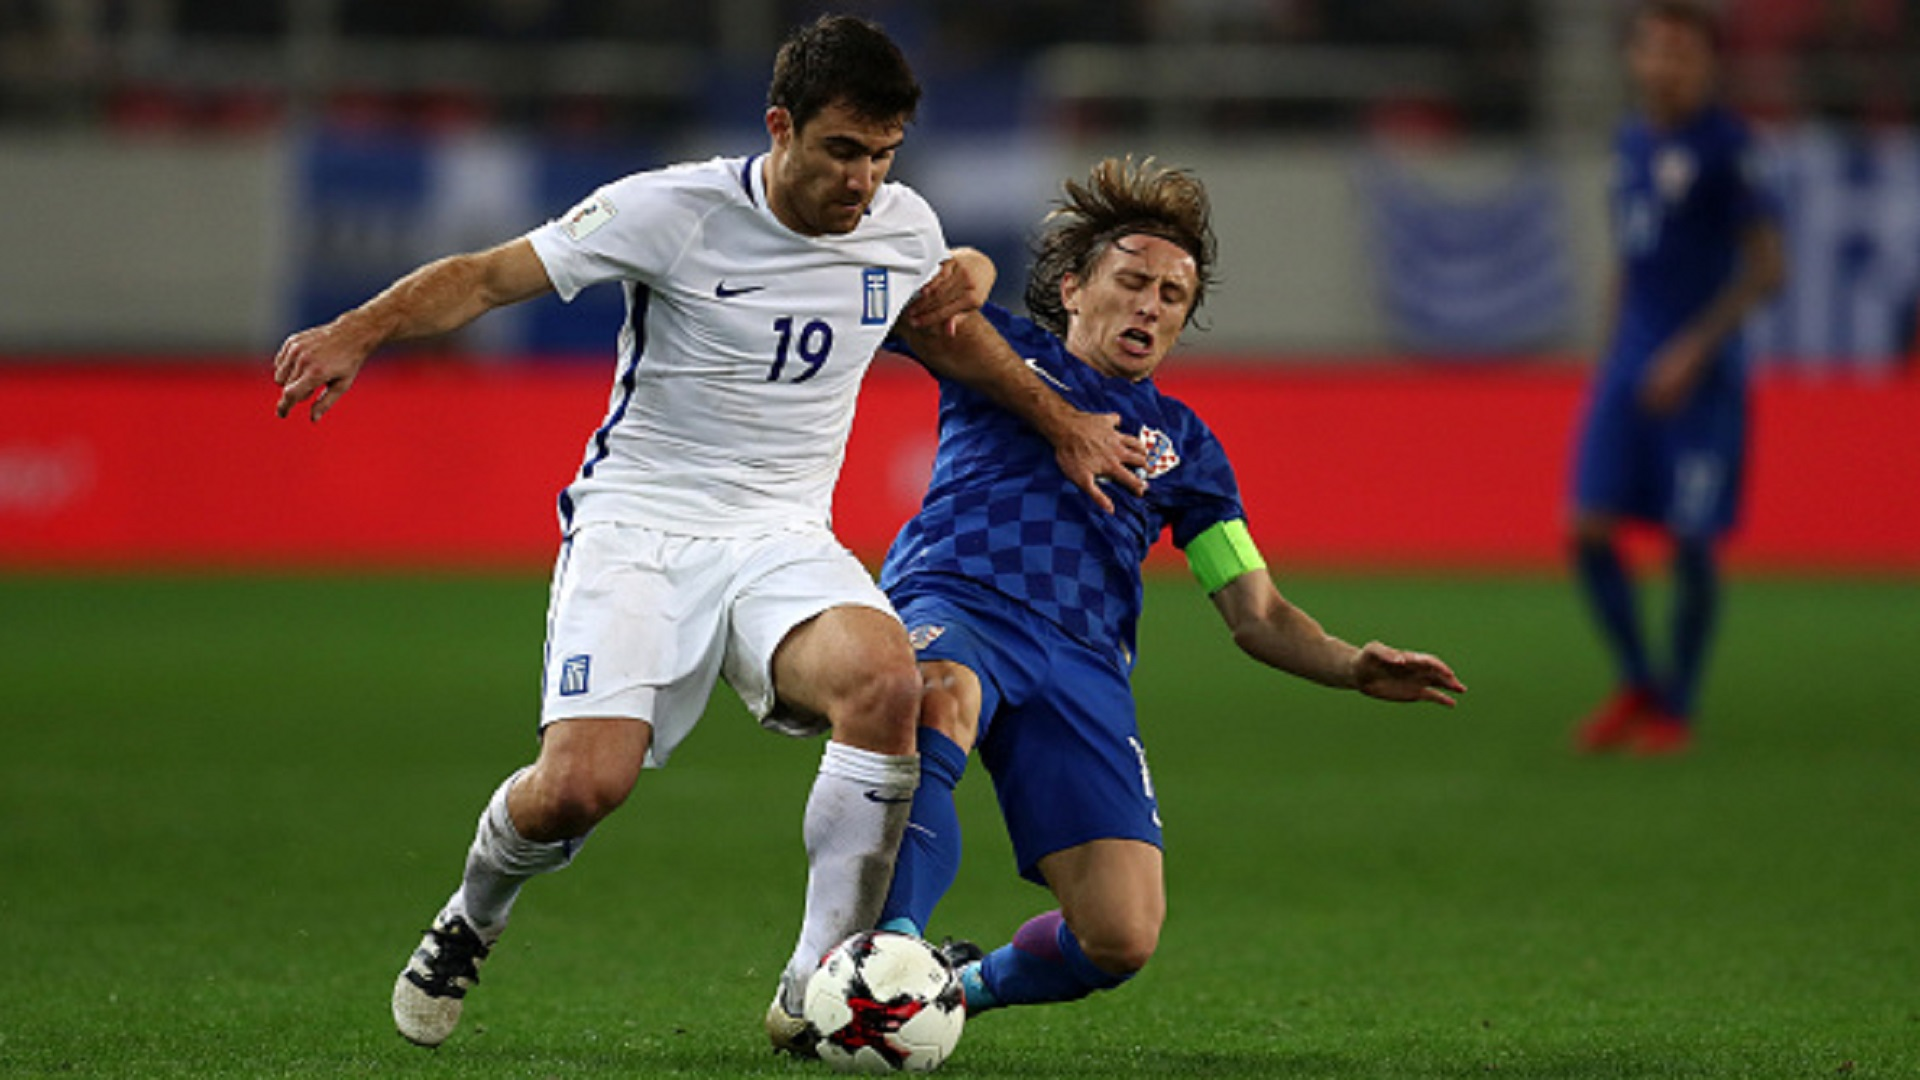 Sokratis Papastathopoulos of Greece and Luka Modric of Croatia during the FIFA 2018 World Cup Qualifier Play-Off